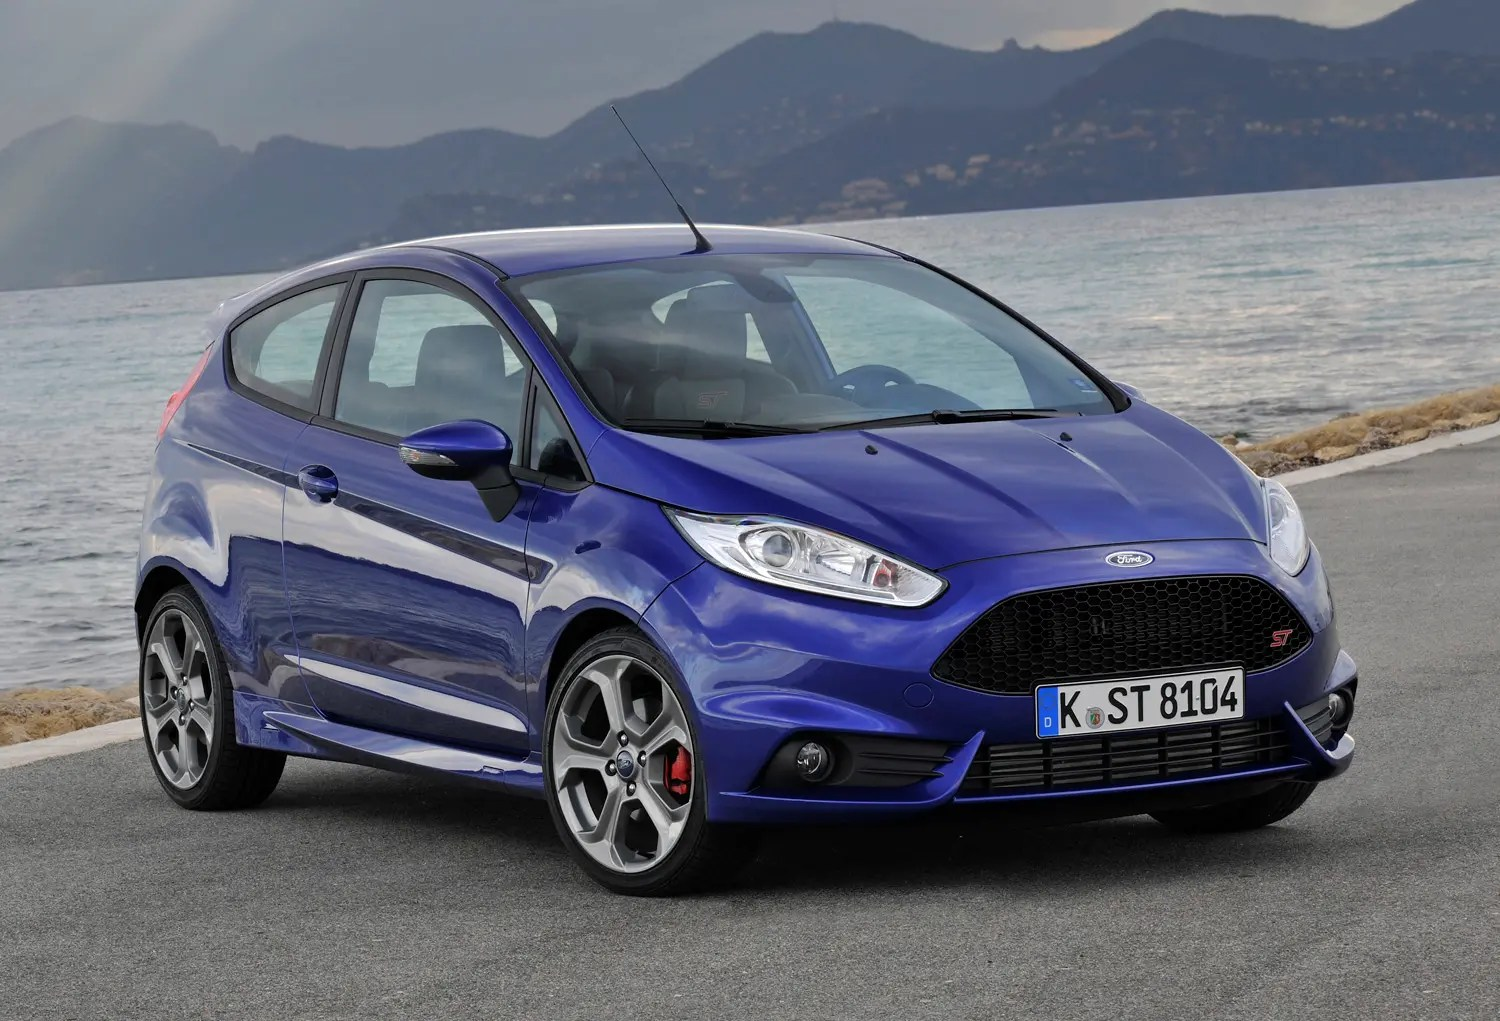 Ford Fiesta St Ford Fiesta St 2012 Photos Parkers